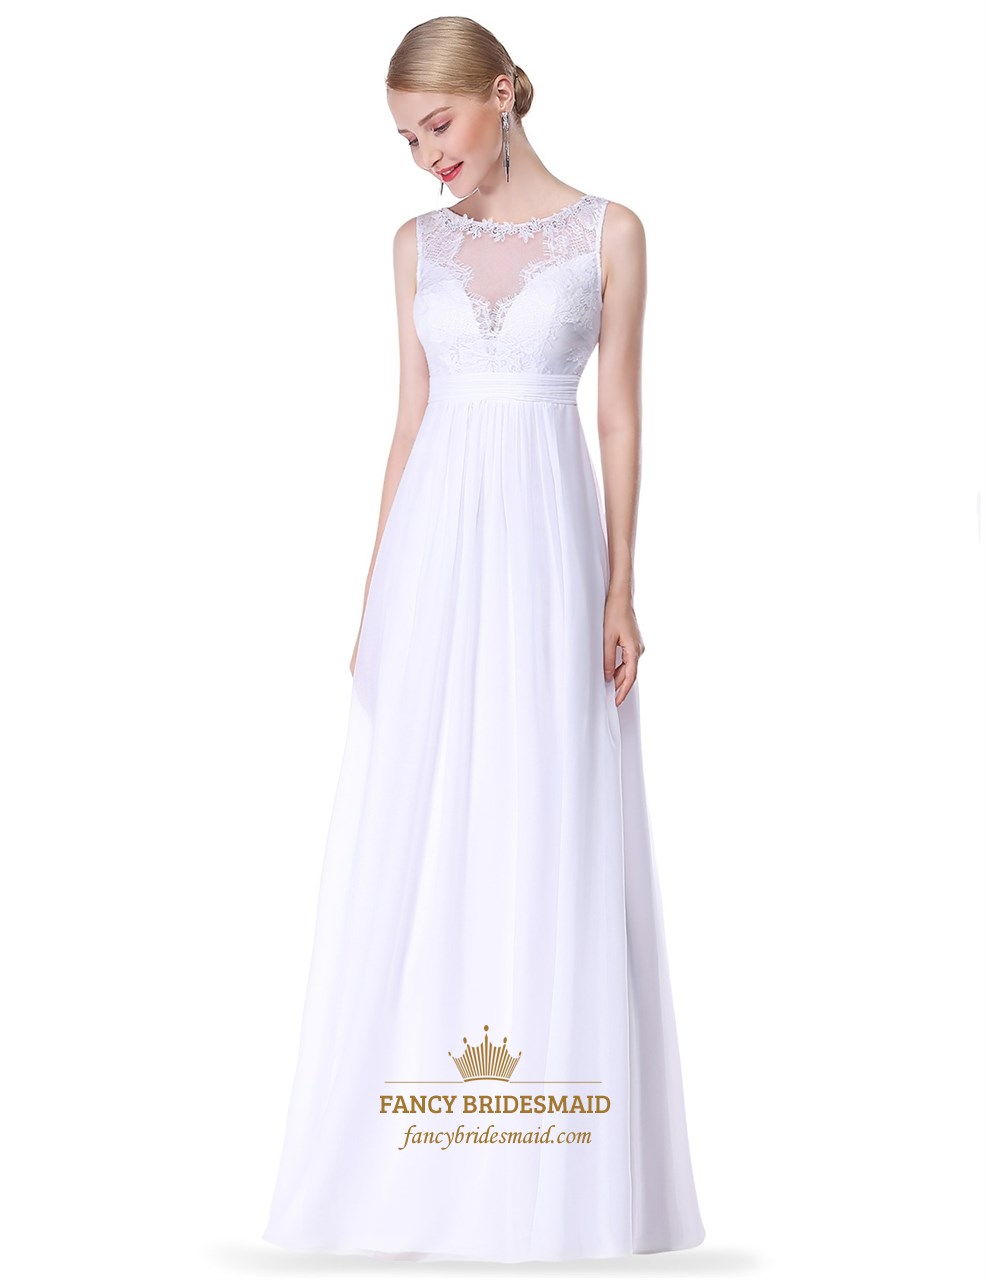 Illusion Sleeveless Empire Waist Lace Chiffon A-Line Long Prom Dress.  Product Photos. Color c7d03aa38